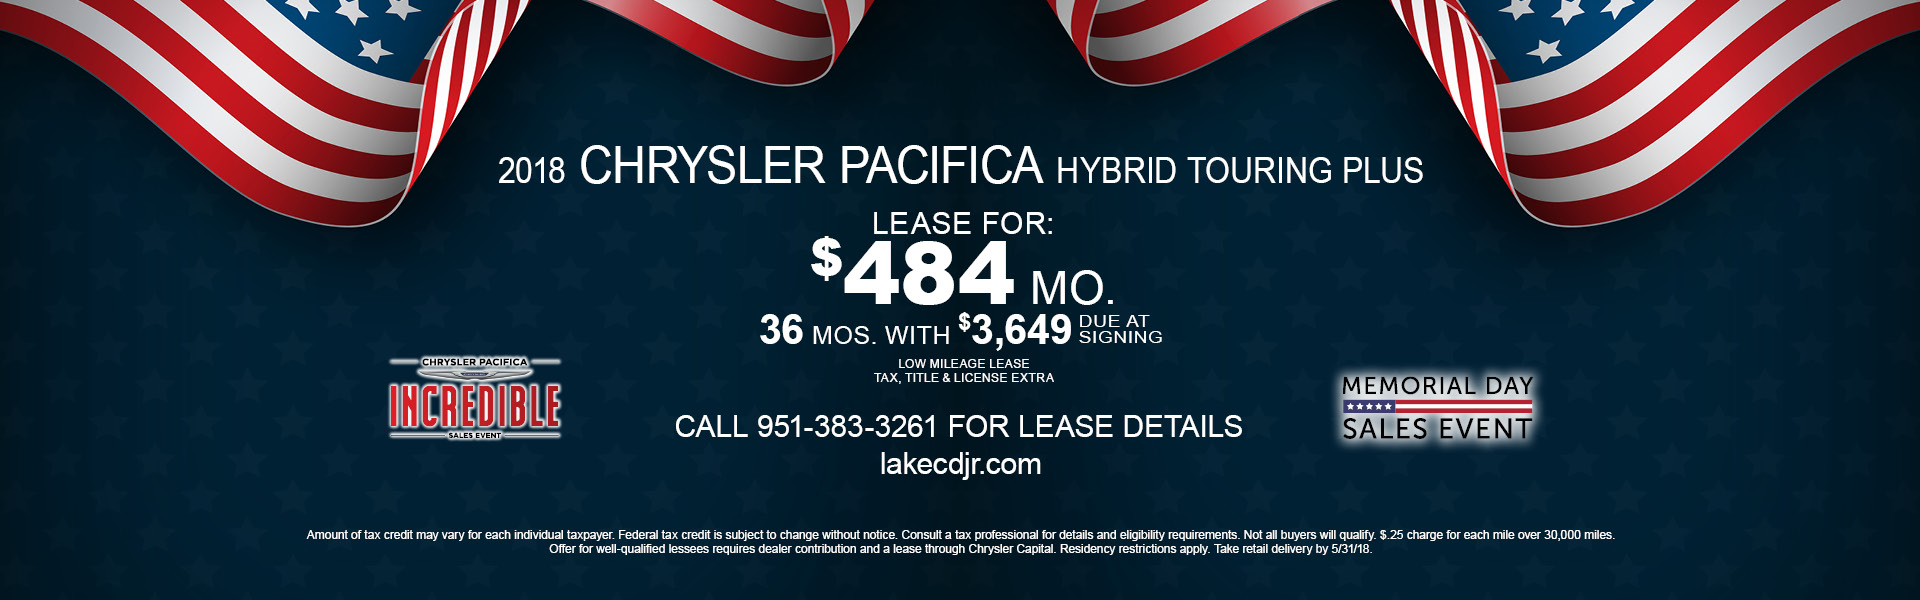 Chrysler Pacifica Hybrid Touring $484 Lease